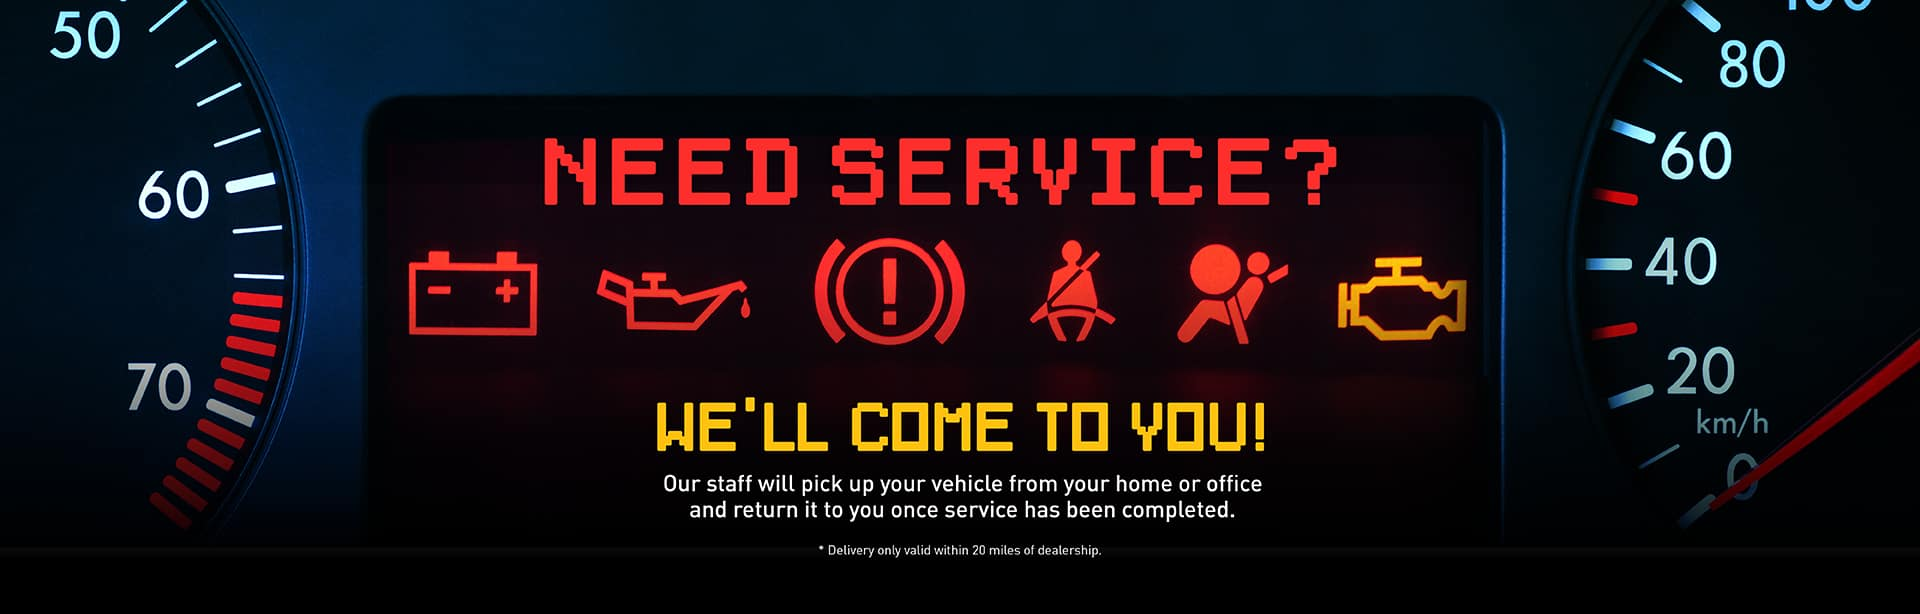 We'll Come To You For Service